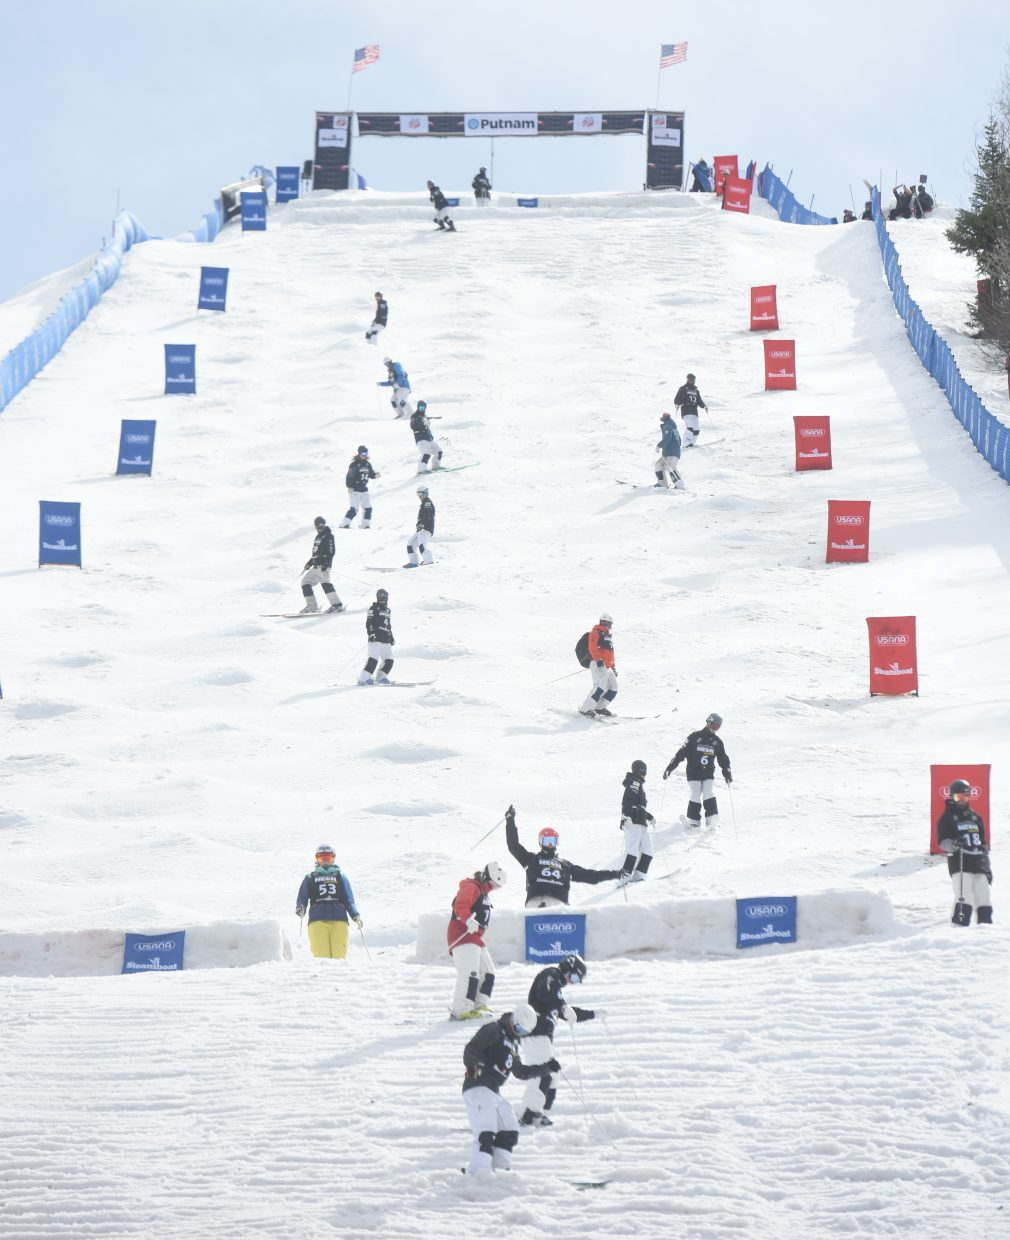 More than a dozen skiers make their way down Voodoo run at Steamboat Ski Area on Friday before the U.S. Freestyle National Championship finals.